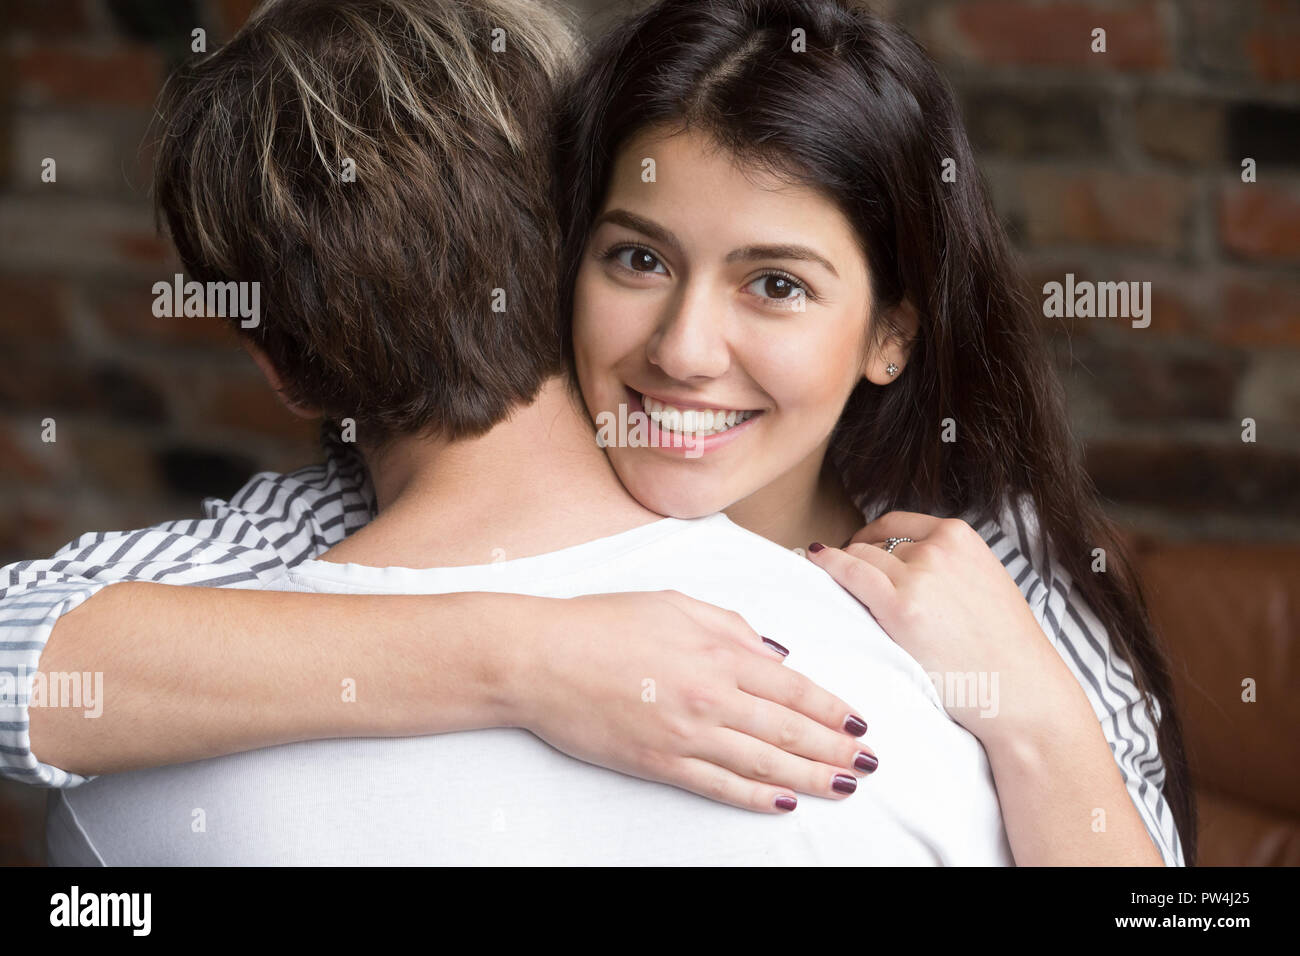 Portrait of young beautiful wife embracing husband - Stock Image